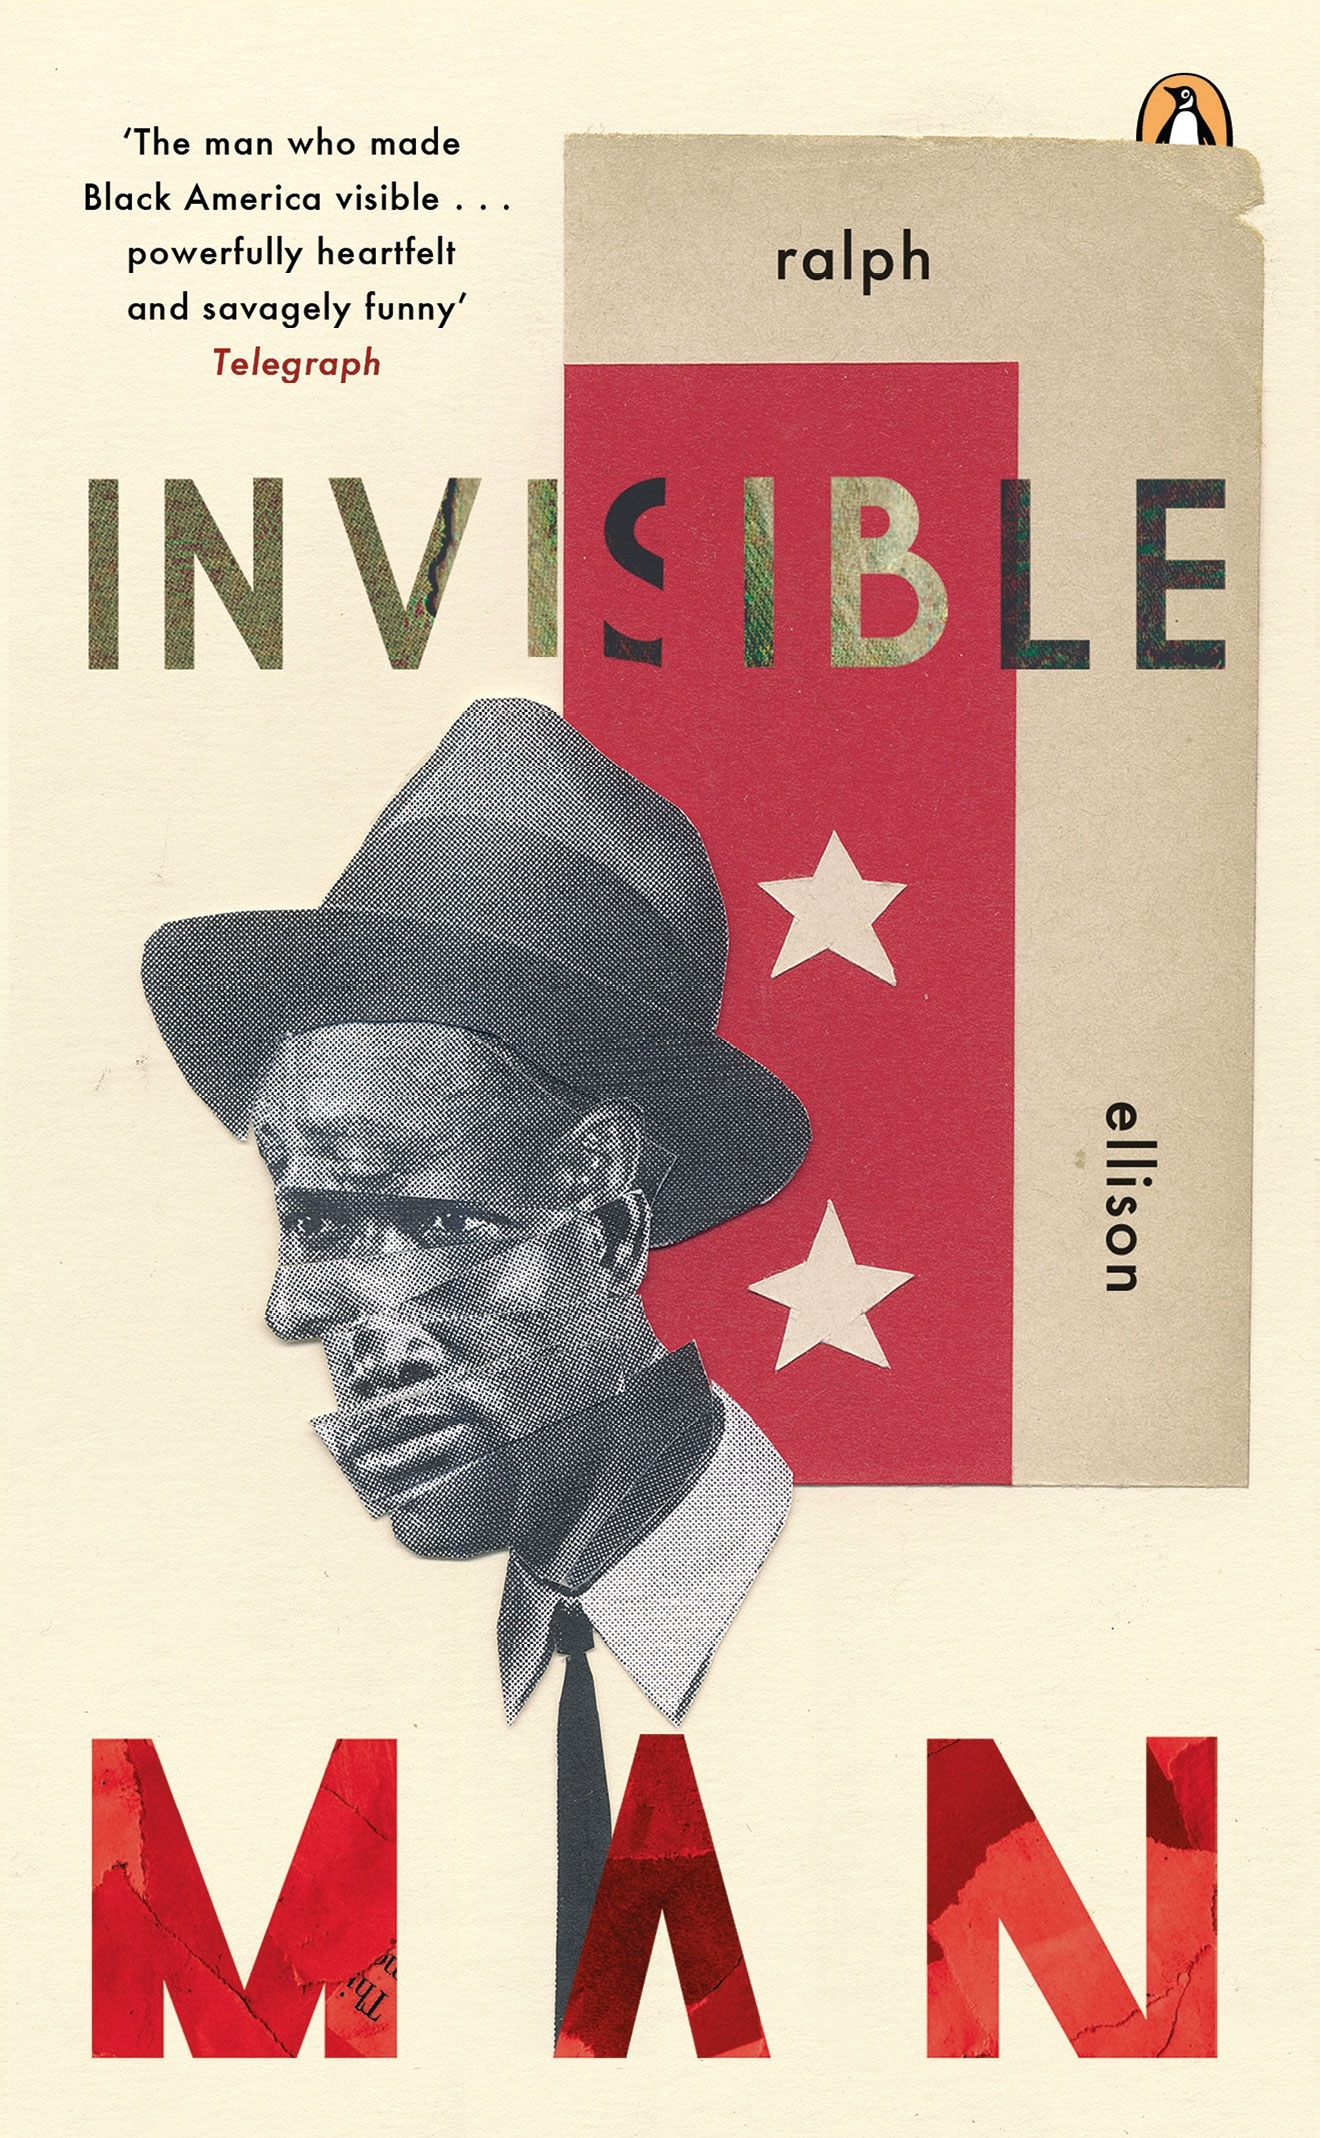 societal conformity in invisible man a novel by ralph ellison Clint smith on teaching in a high school with many immigrant students and revisiting ralph ellison's invisible man in the time of donald trump  i picked up ralph ellison's 1952 novel.